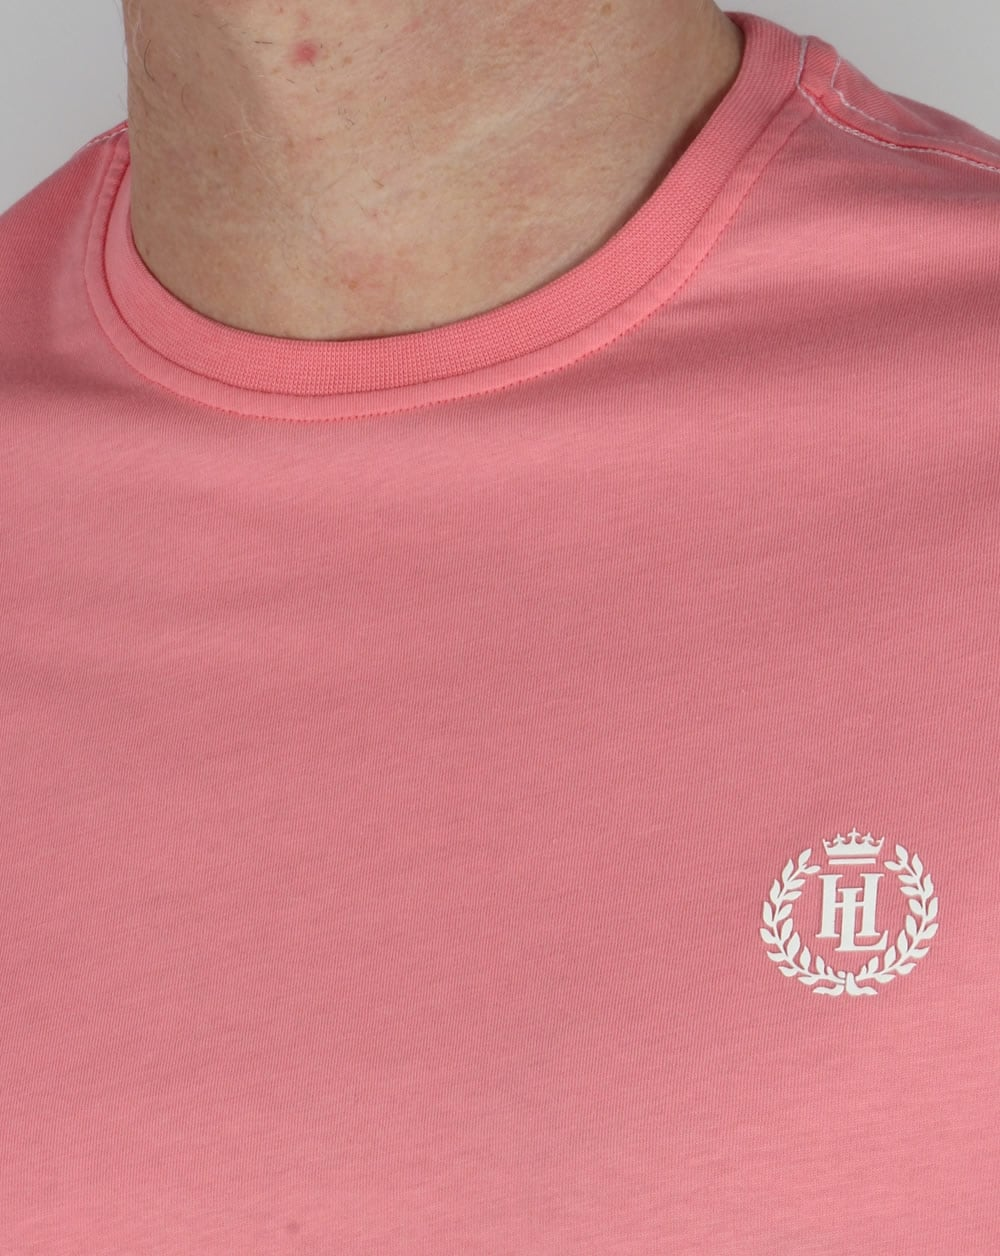 Henri Lloyd Radar T Shirt Salmon Pink,tee,logo,mens,sale